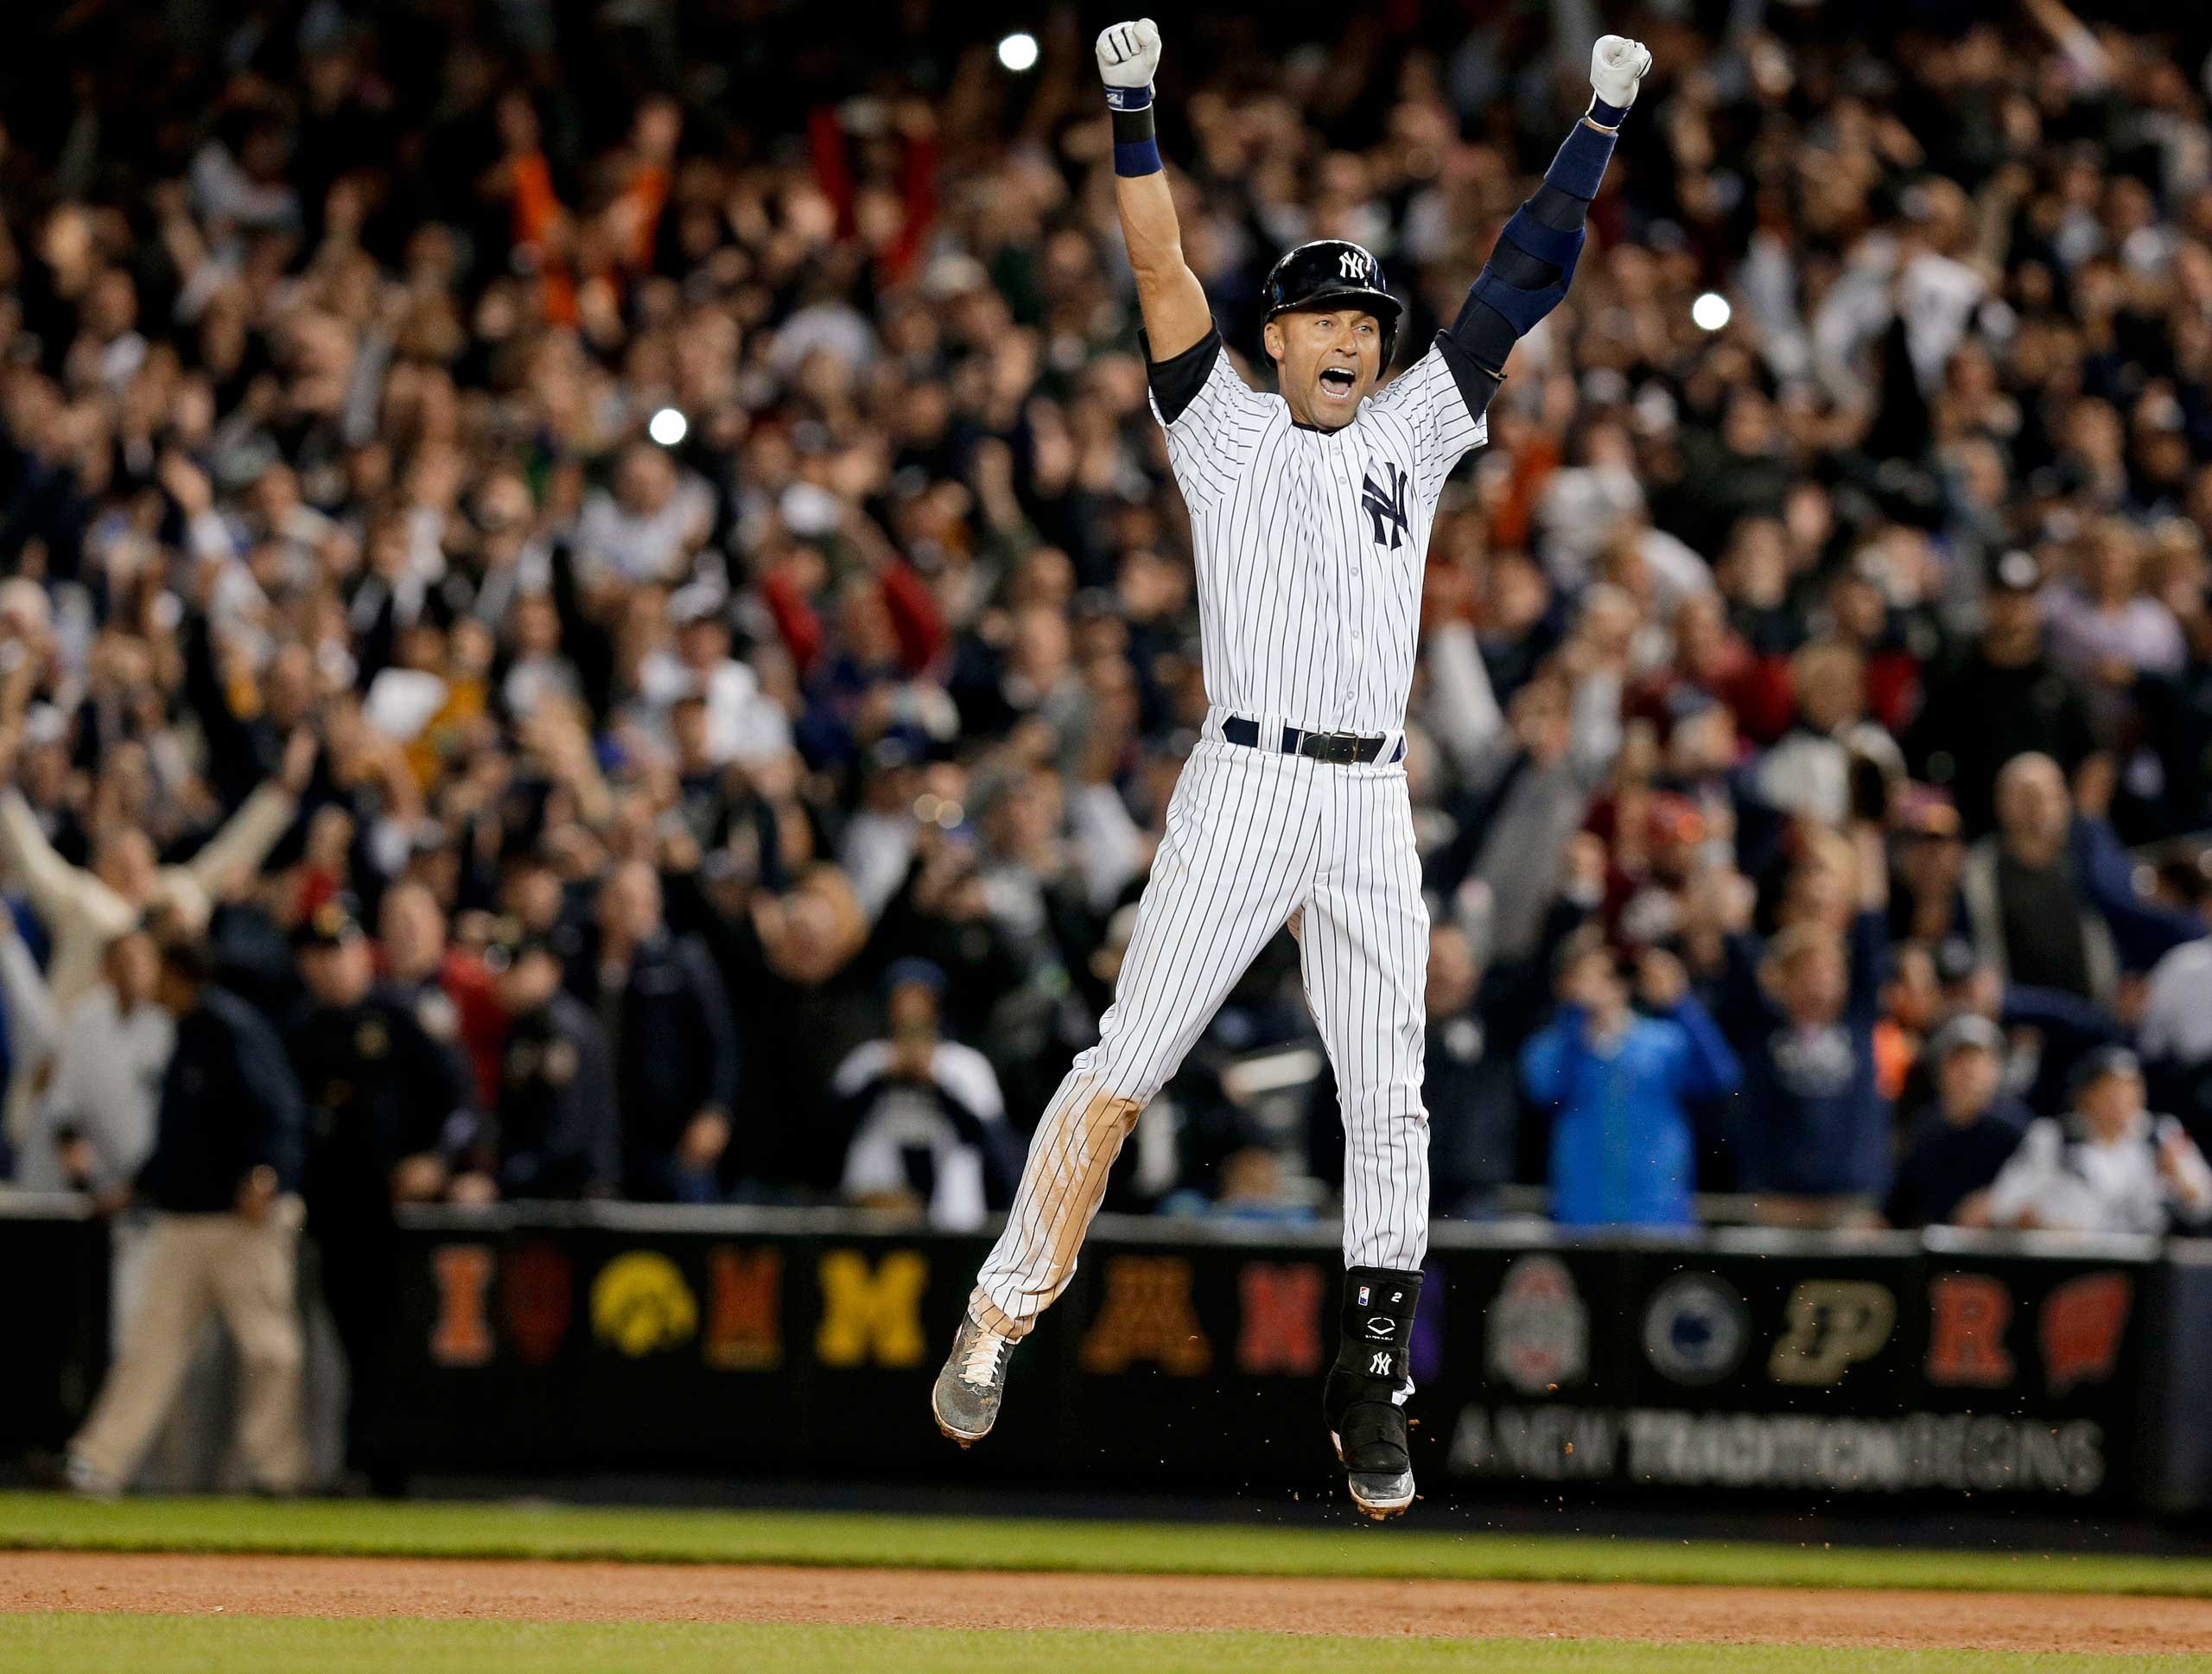 New York Yankees' Derek Jeter jumps after hitting the game-winning single against the Baltimore Orioles in the ninth inning of a baseball game, New York, Sept. 25, 2014.